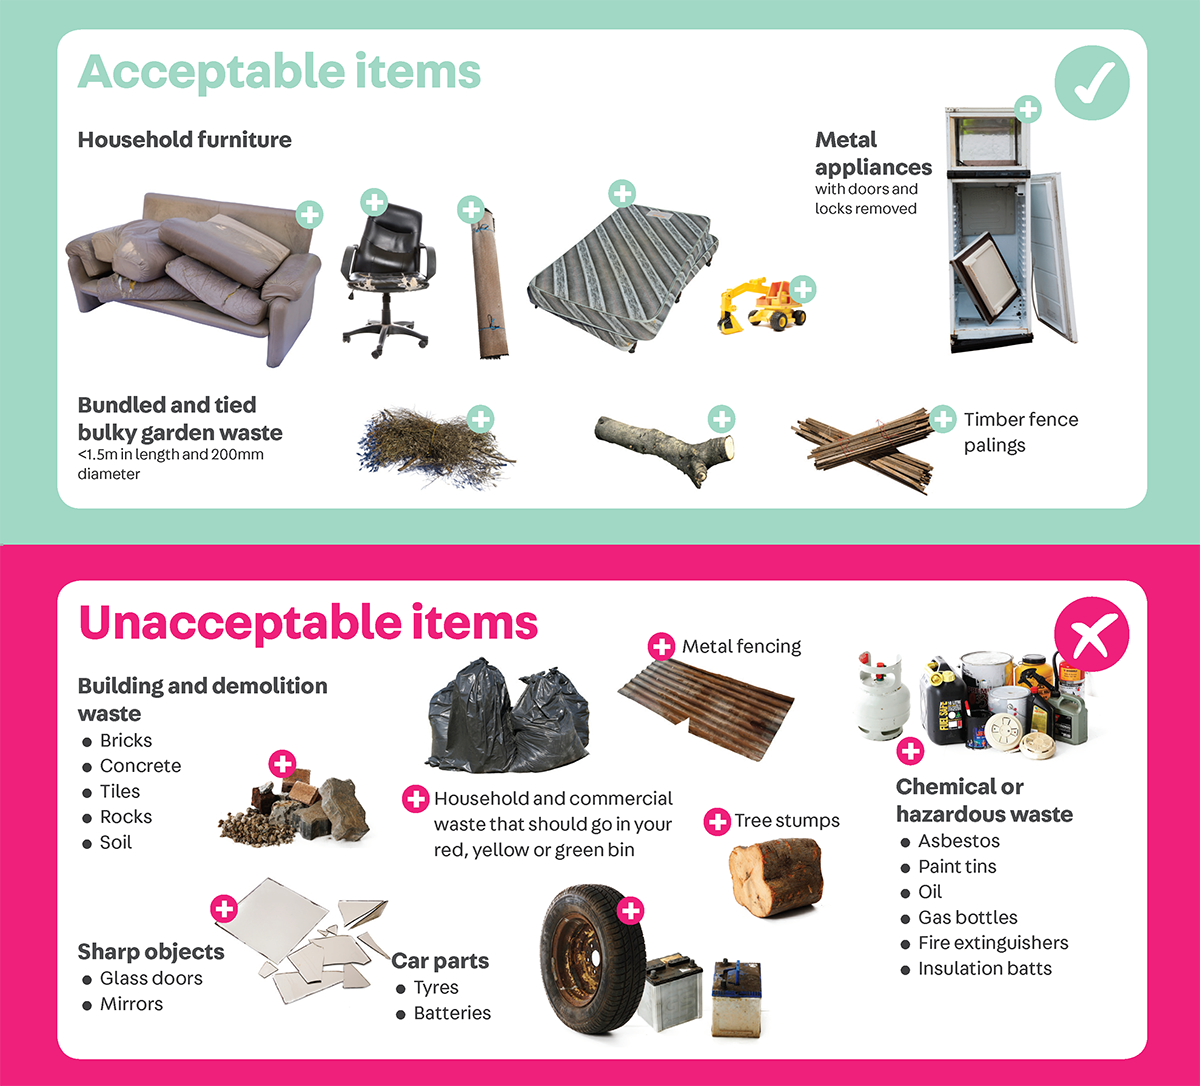 Photo of acceptable and unacceptible waste material for household cleanout